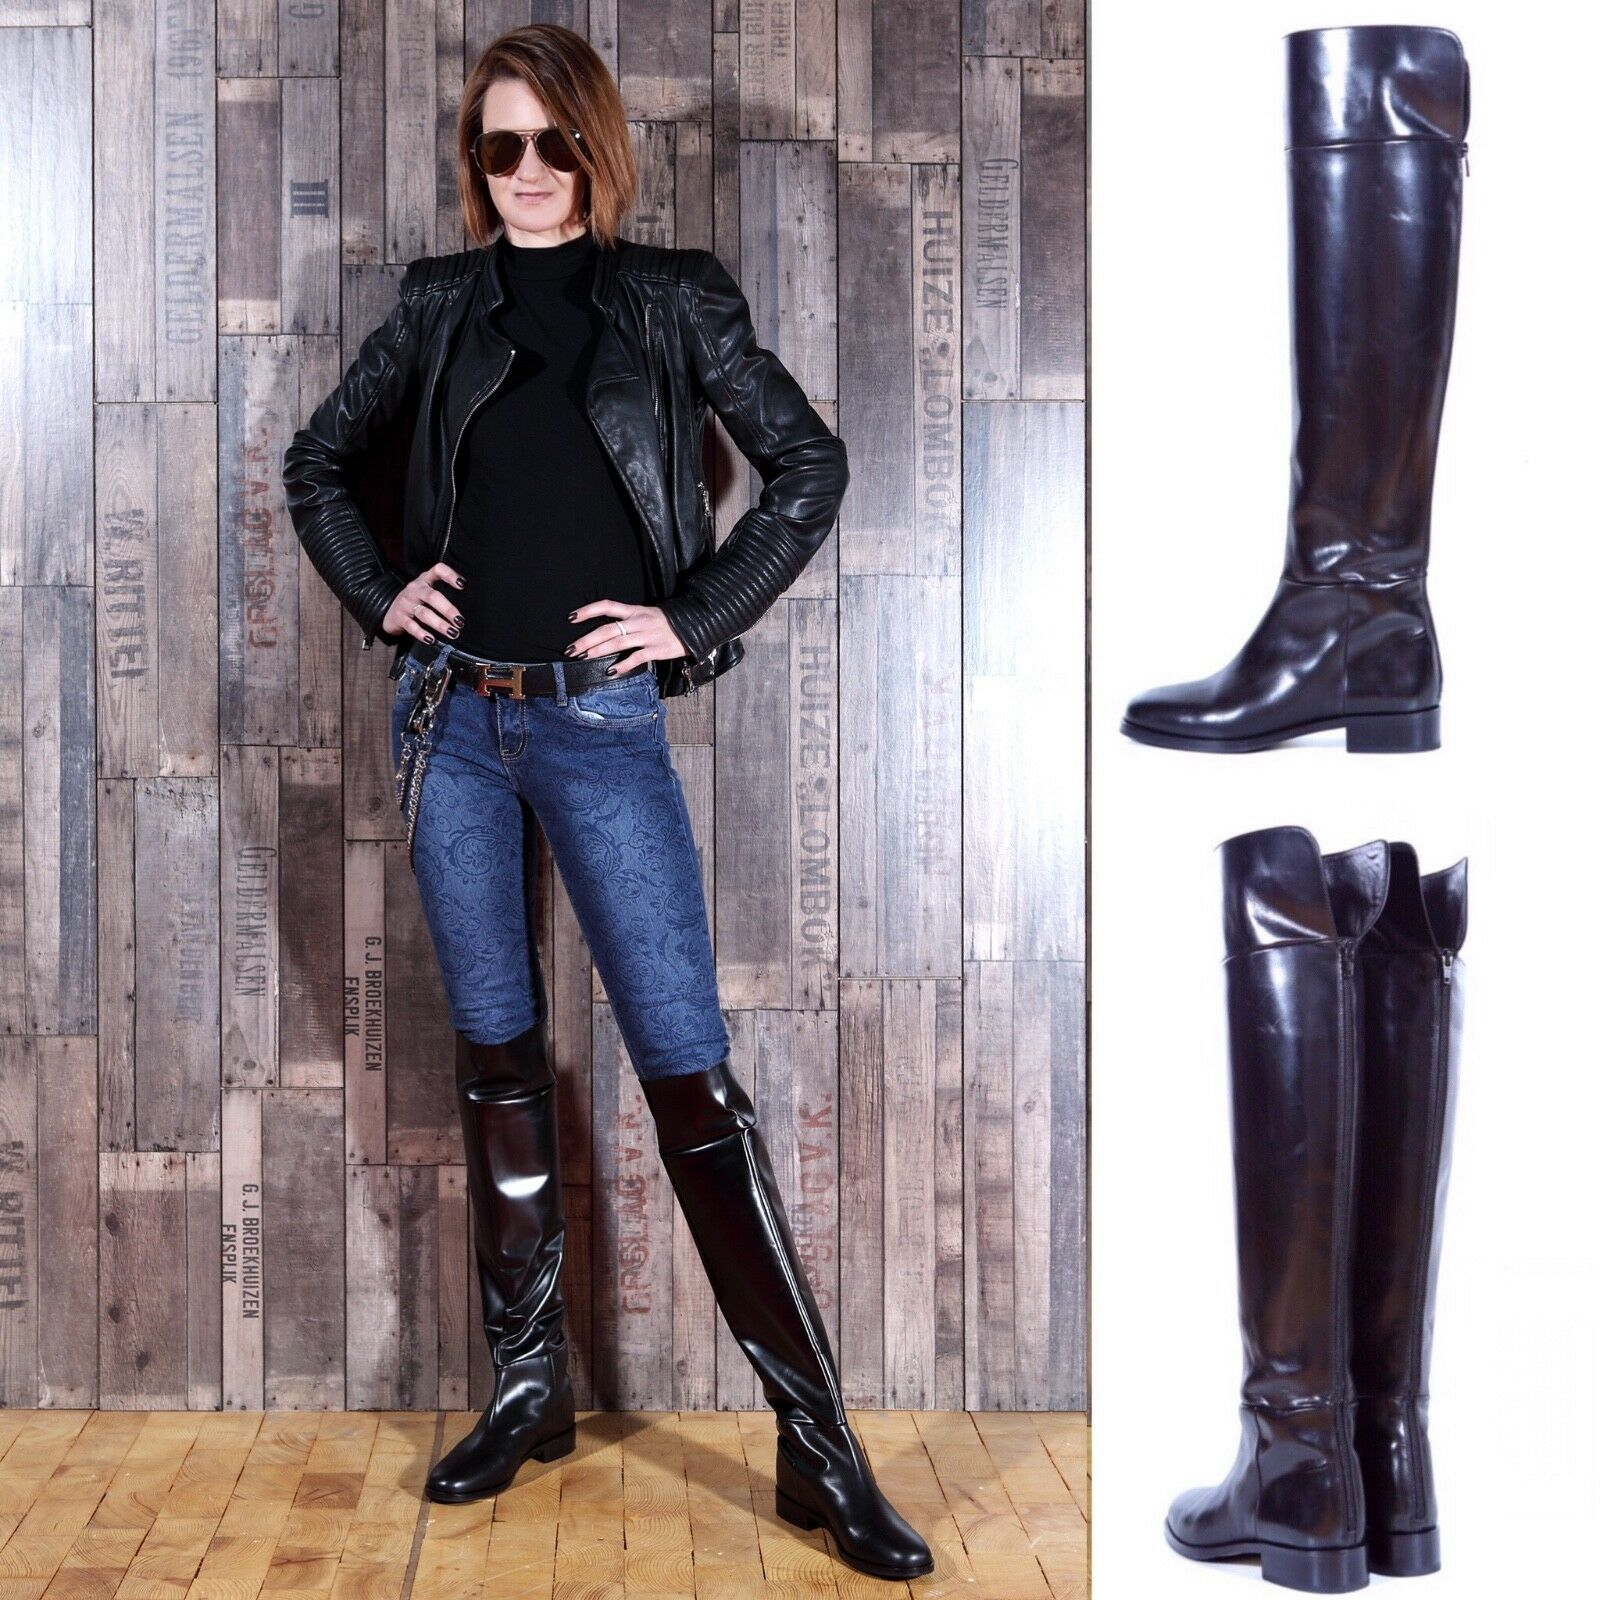 NEW  leather 650£MAURIZIO PORTONI designer over knee leather  riding equestrian Stiefel a5fba8